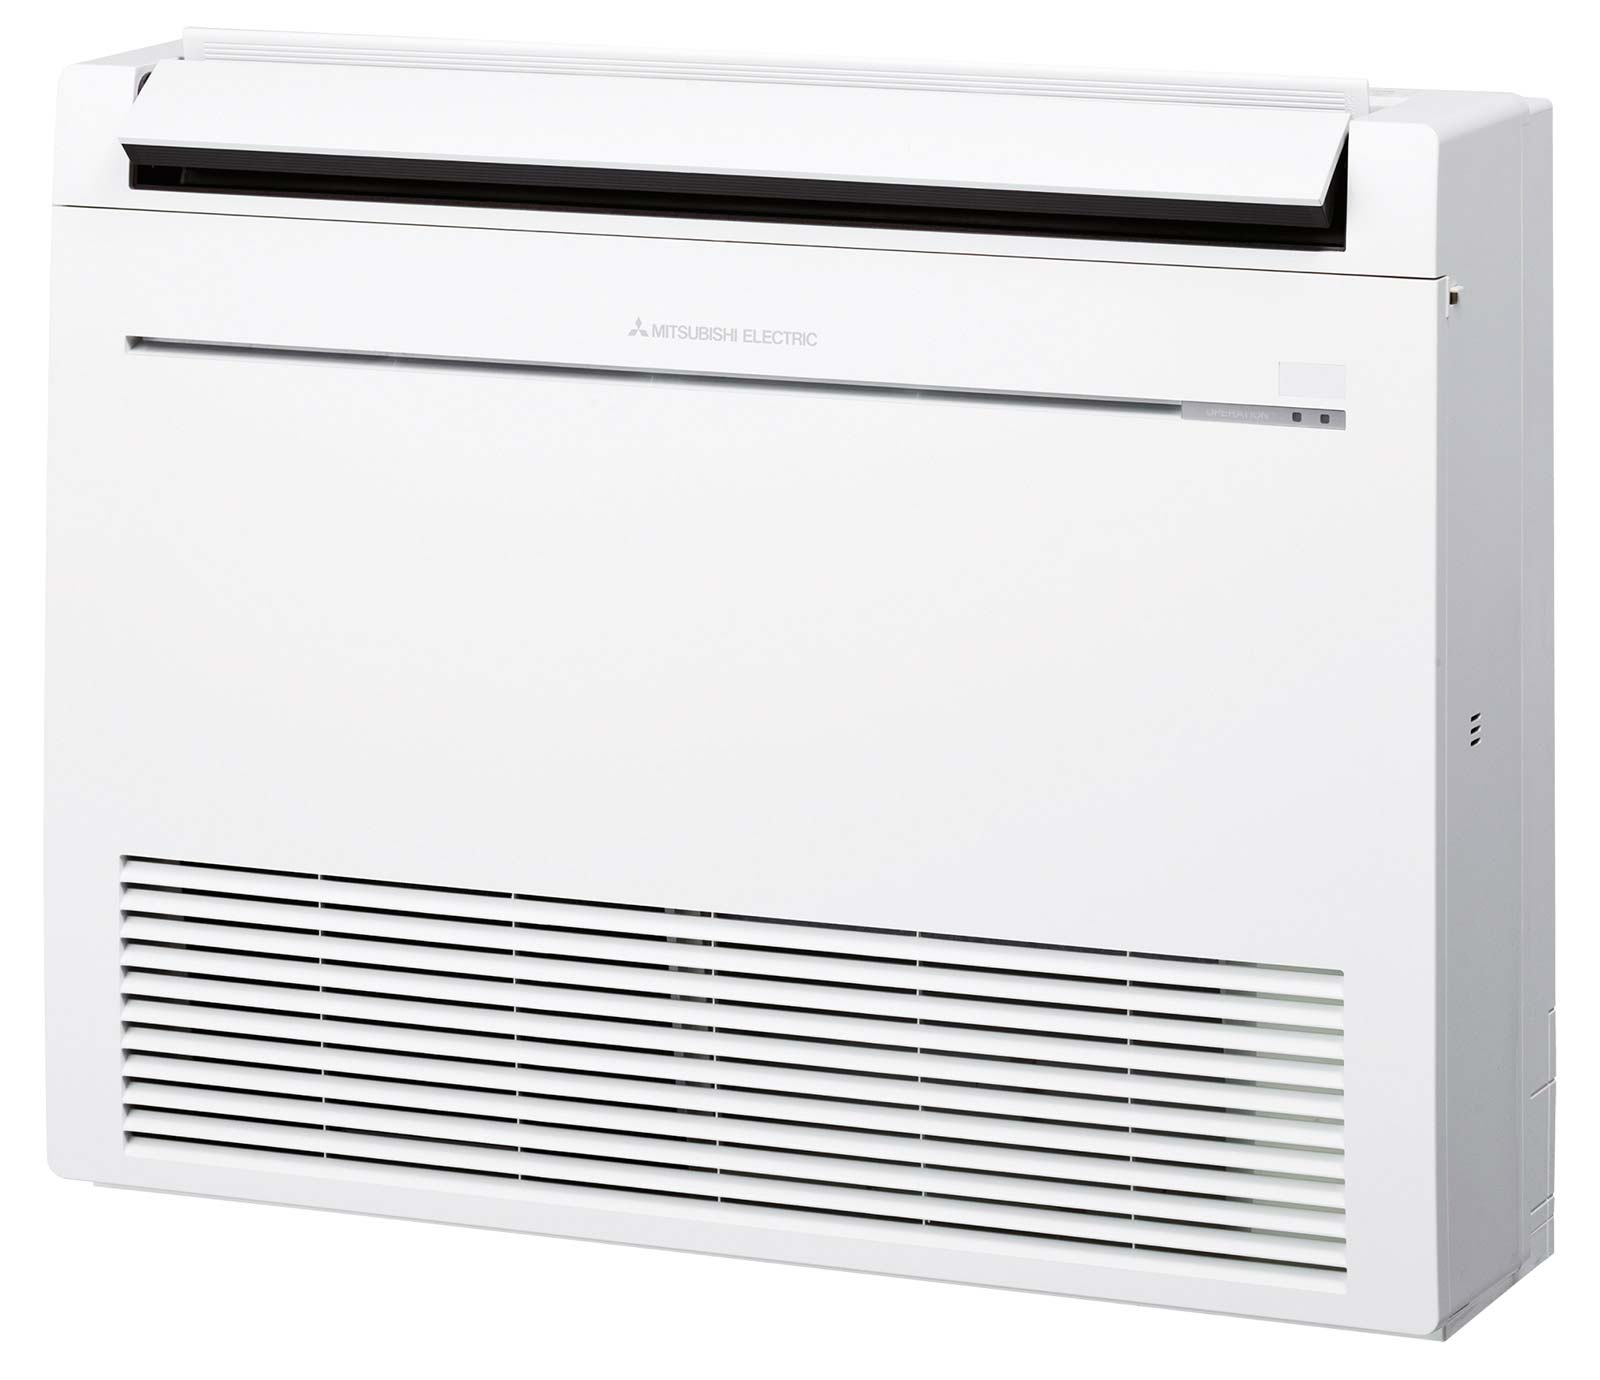 Сплит-система Mitsubishi Electric MFZ-KJ25VE / MUFZ-KJ25VE